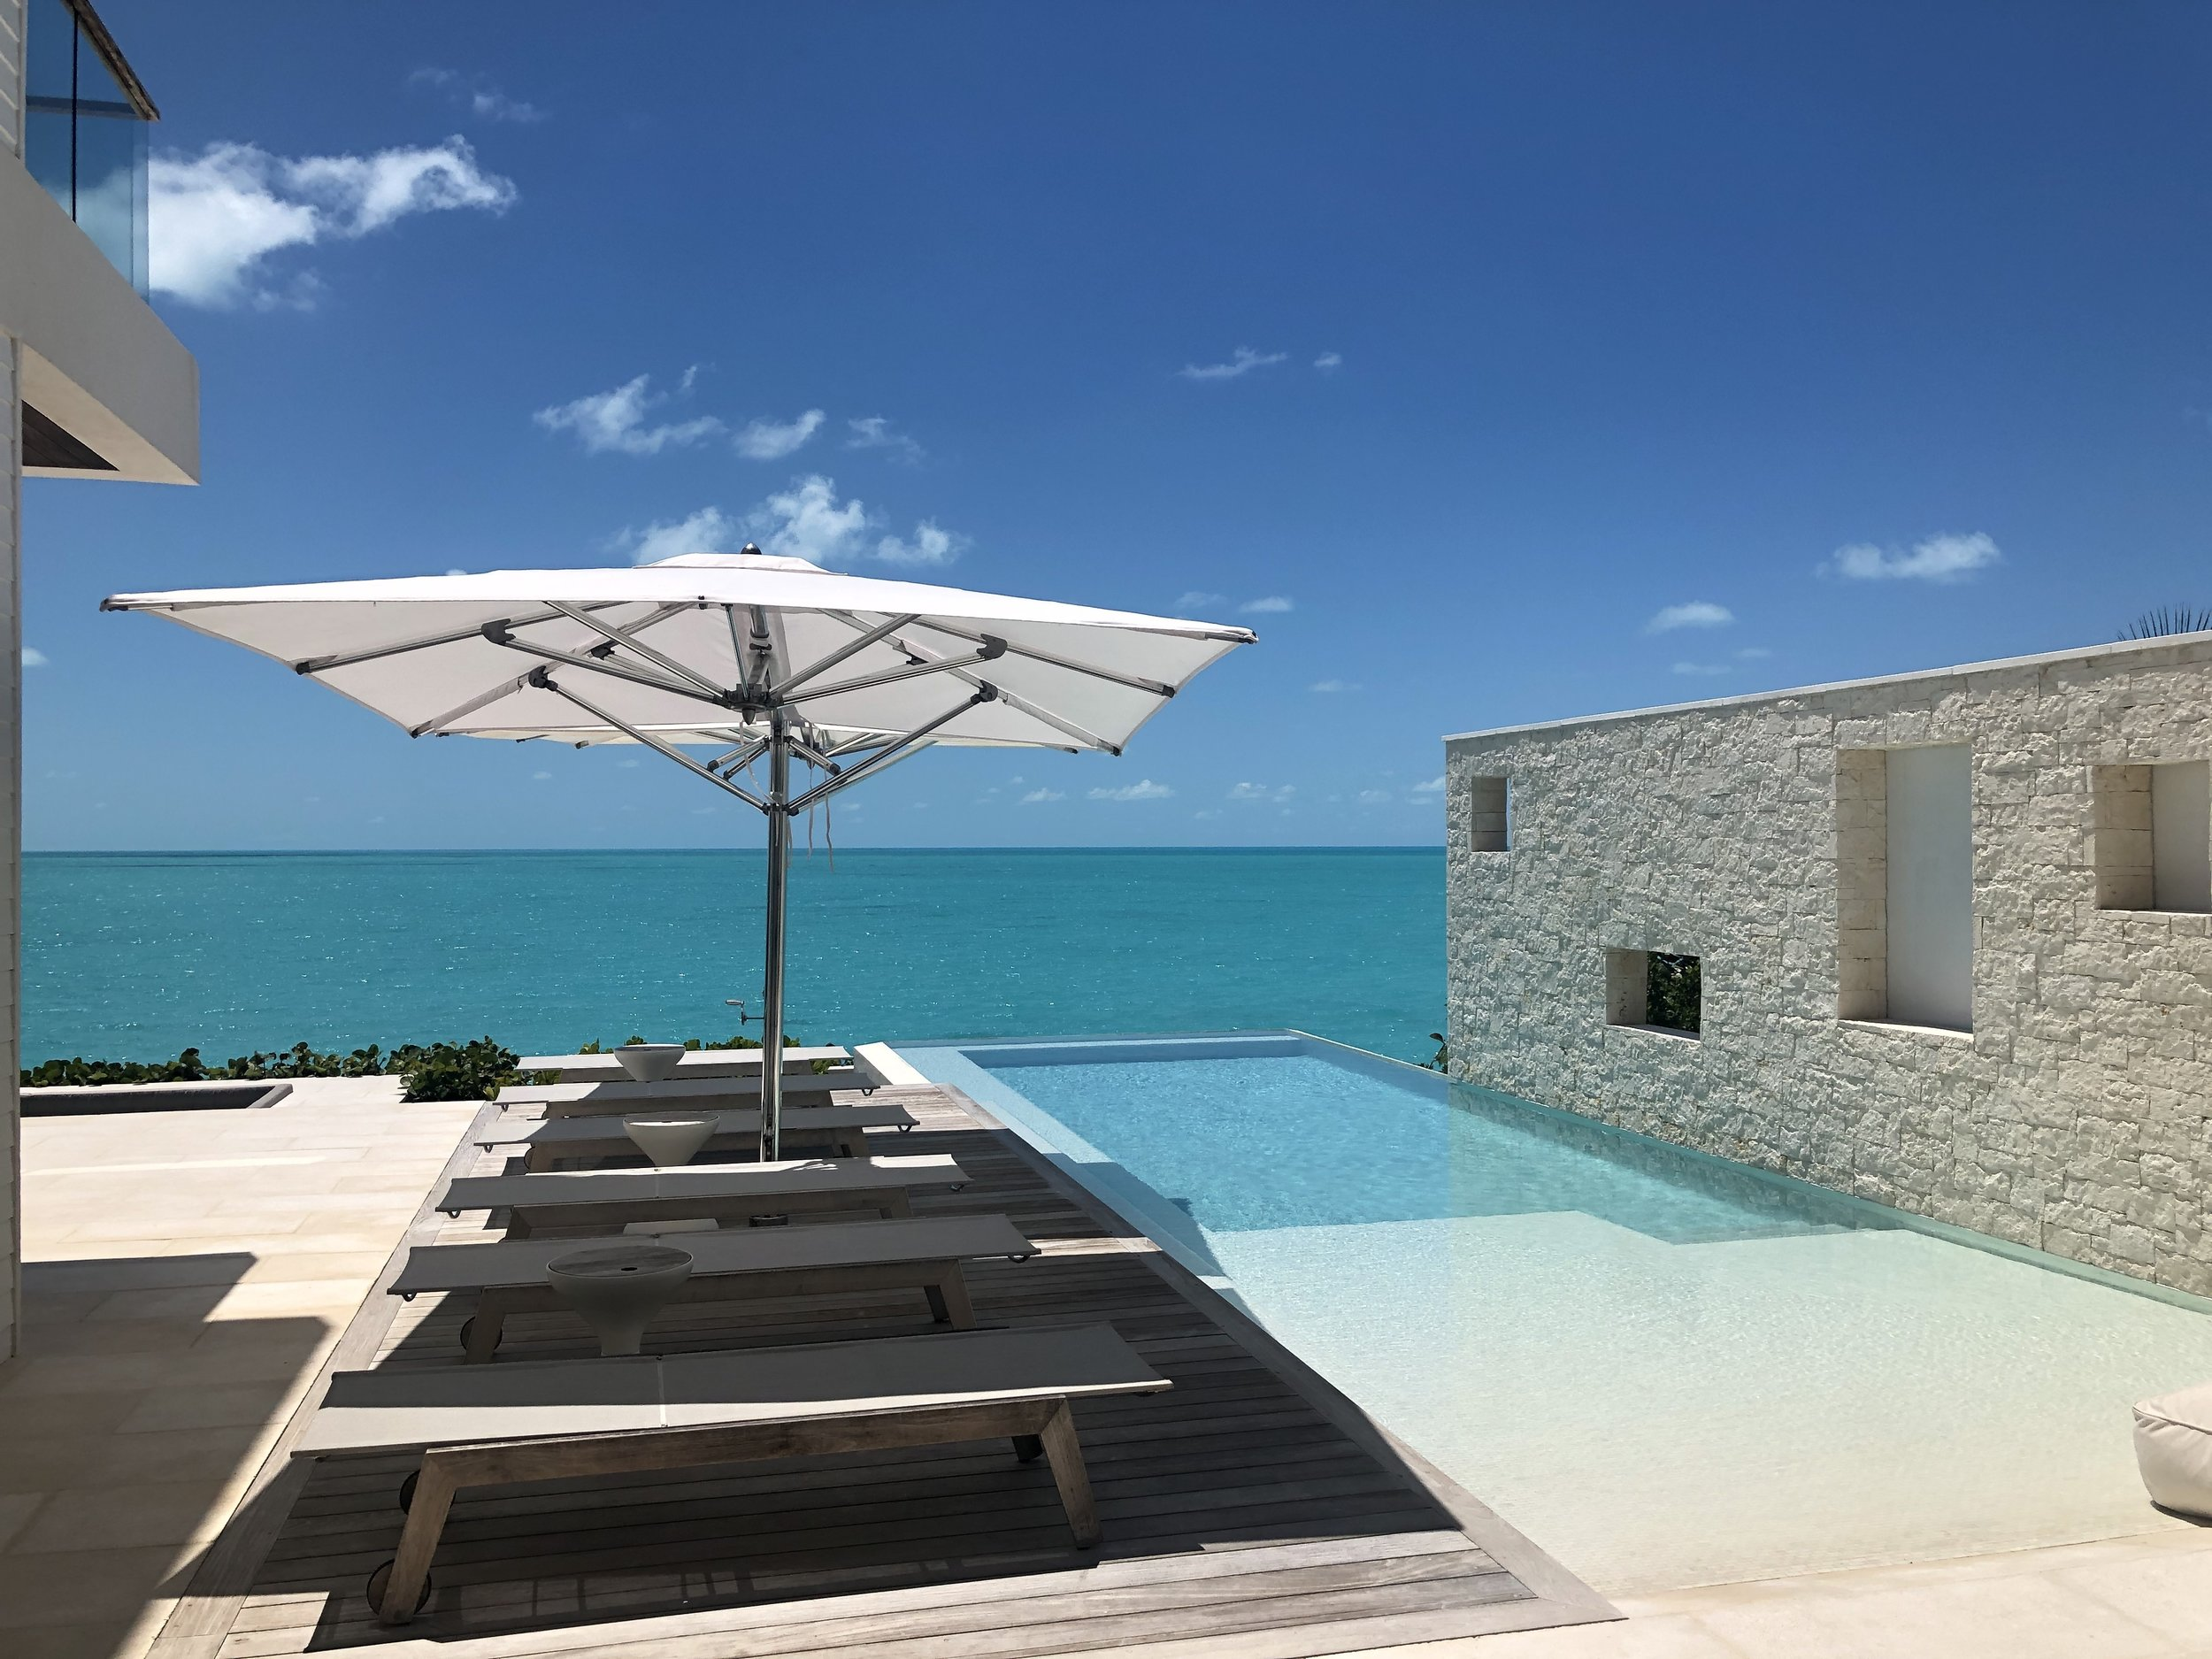 Wanderlust-Travel-blog-Wymara-villa-Turks-and-Caicos